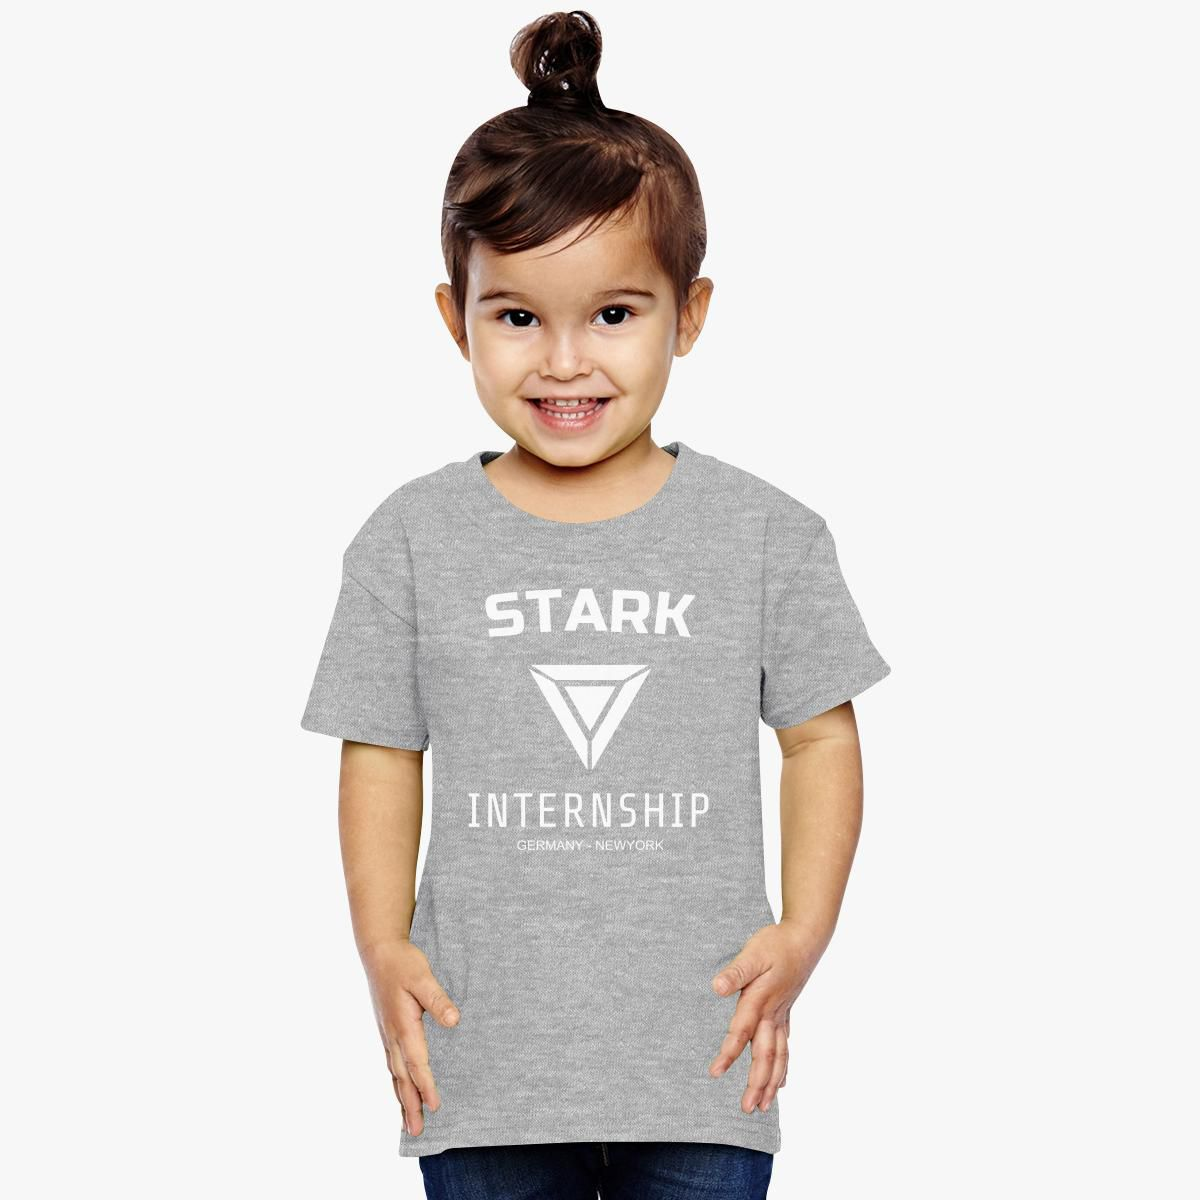 Stark Internship Toddler T-shirt